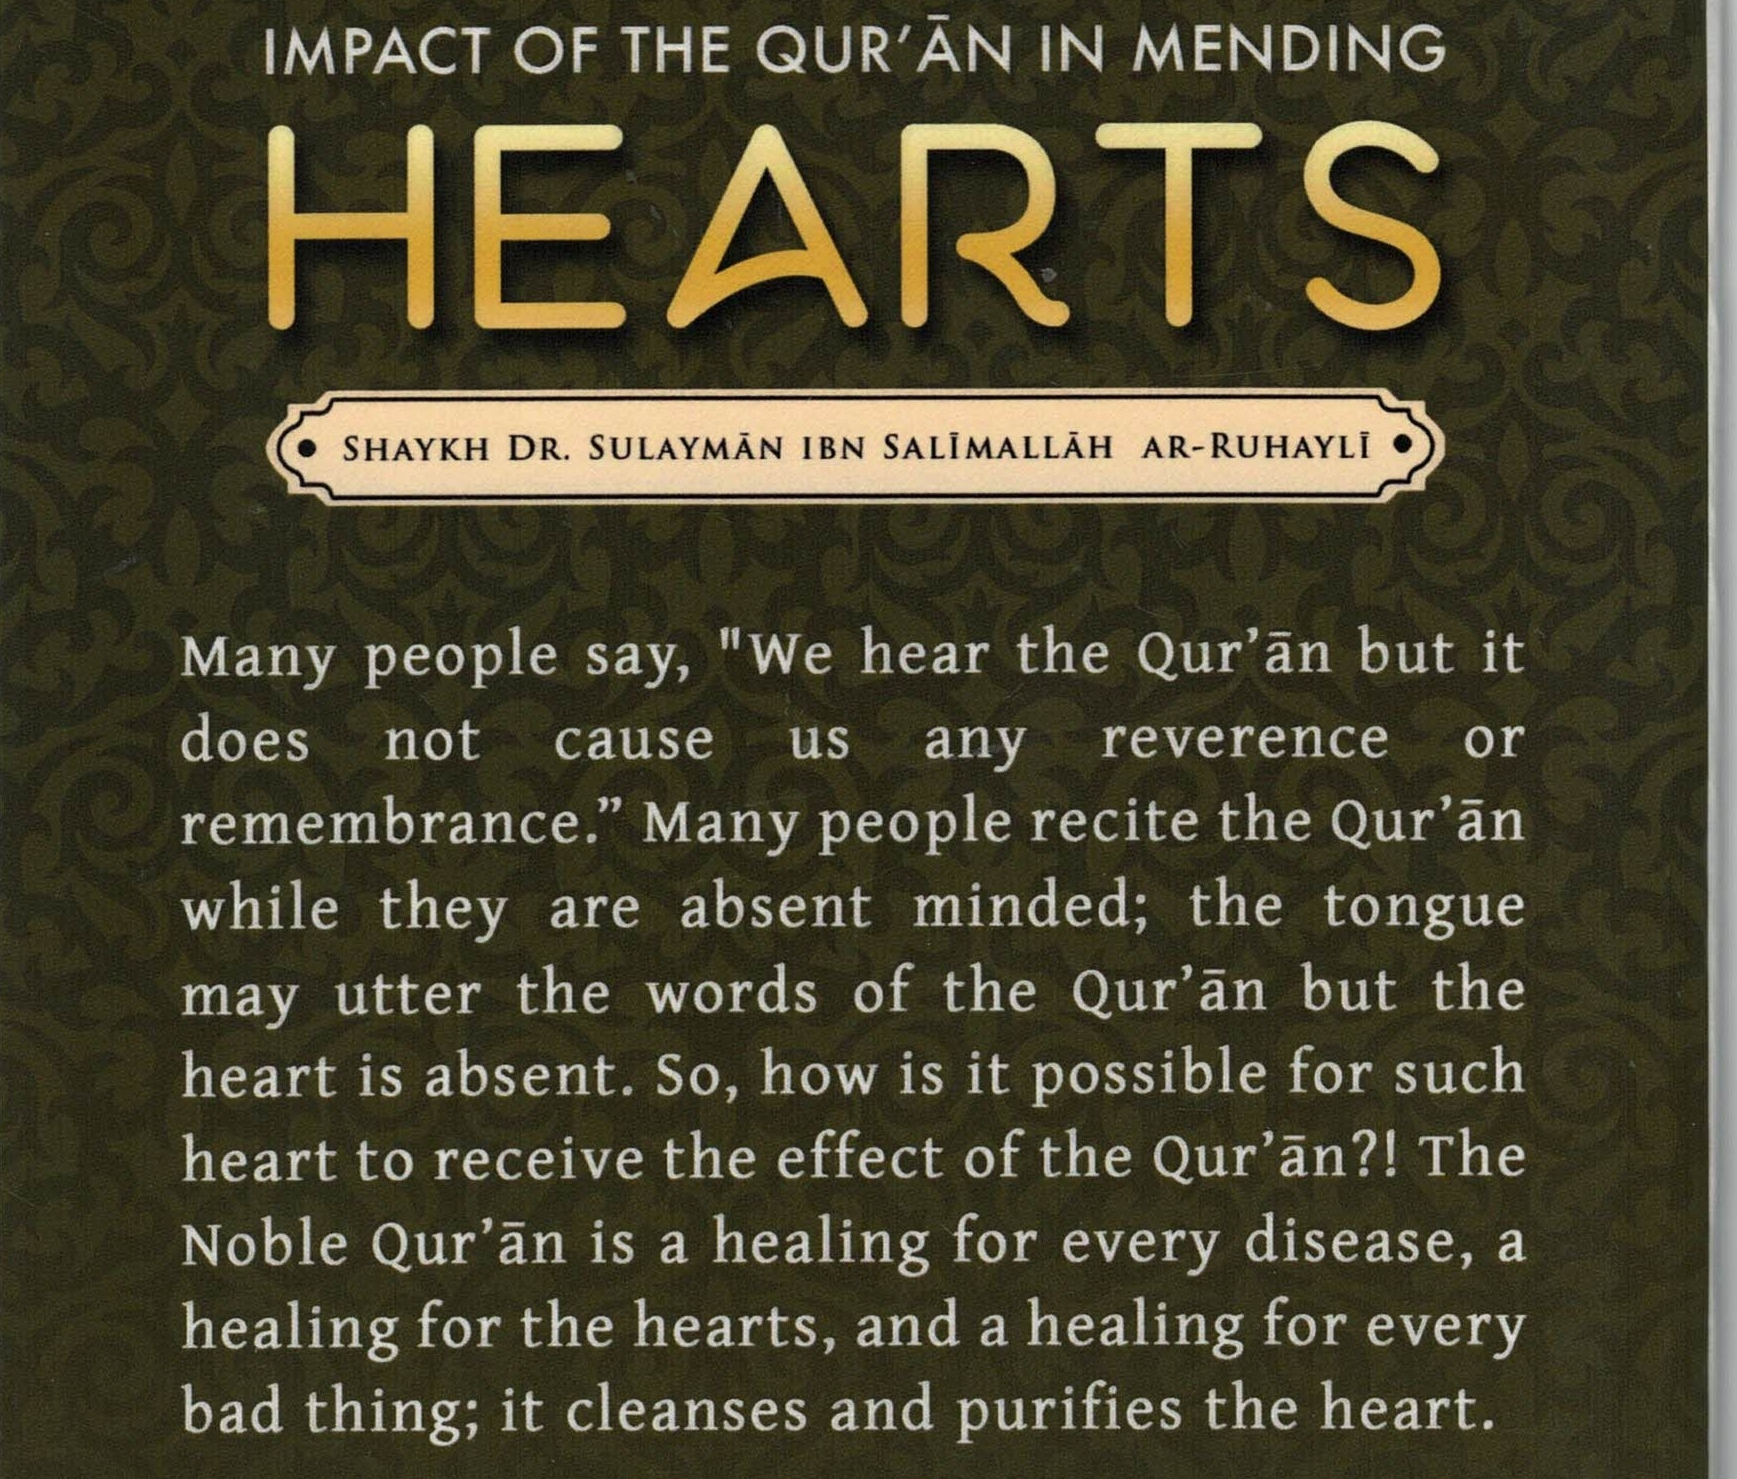 impact-of-the-qur-an-in-mending-hearts-2-copy.jpg